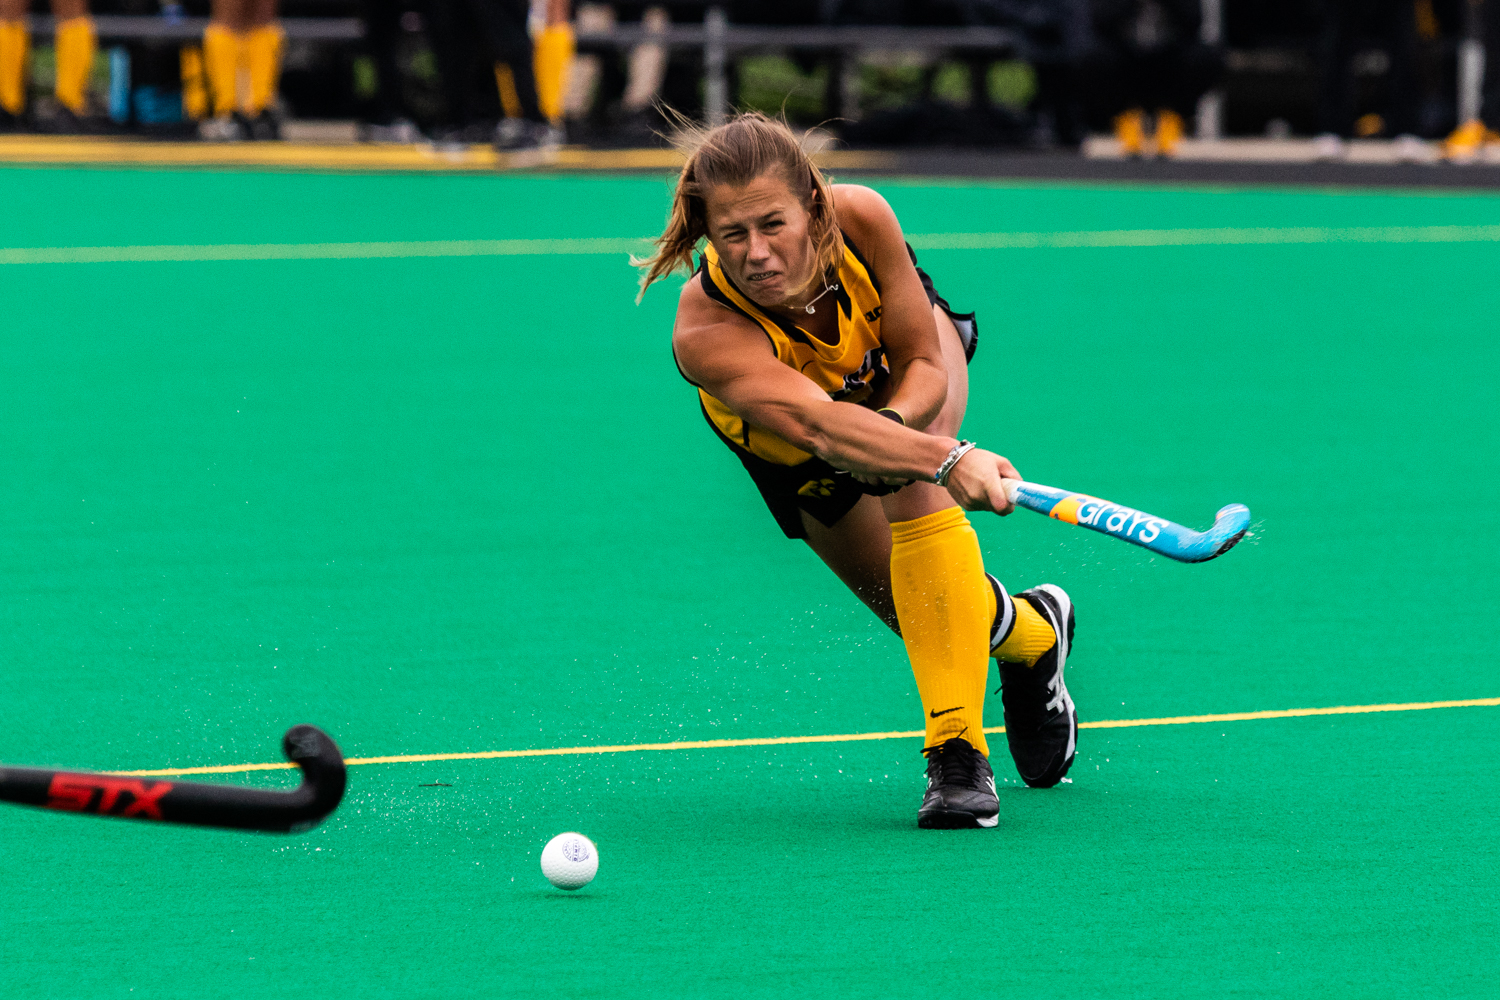 Iowa midfielder Sophie Sunderland passes the ball during a field hockey match against Maryland on Sunday, Oct. 14, 2018. The no. 2 ranked Terrapins defeated the no. 8 ranked Hawkeyes 2-1. (David Harmantas/The Daily Iowan)